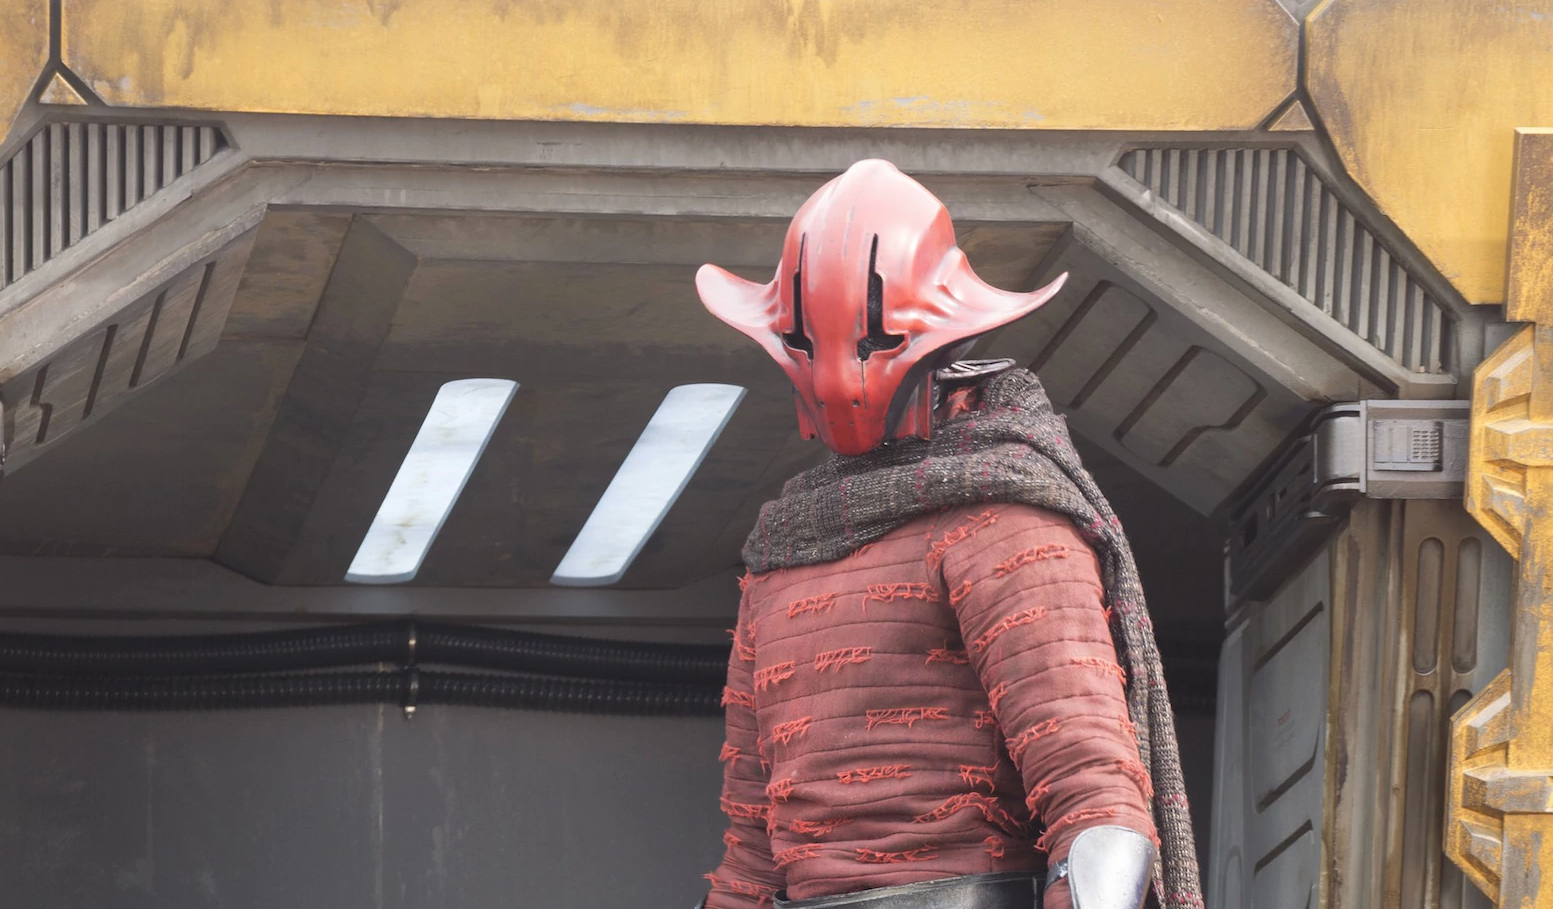 The 50 Best Minor Characters In Star Wars